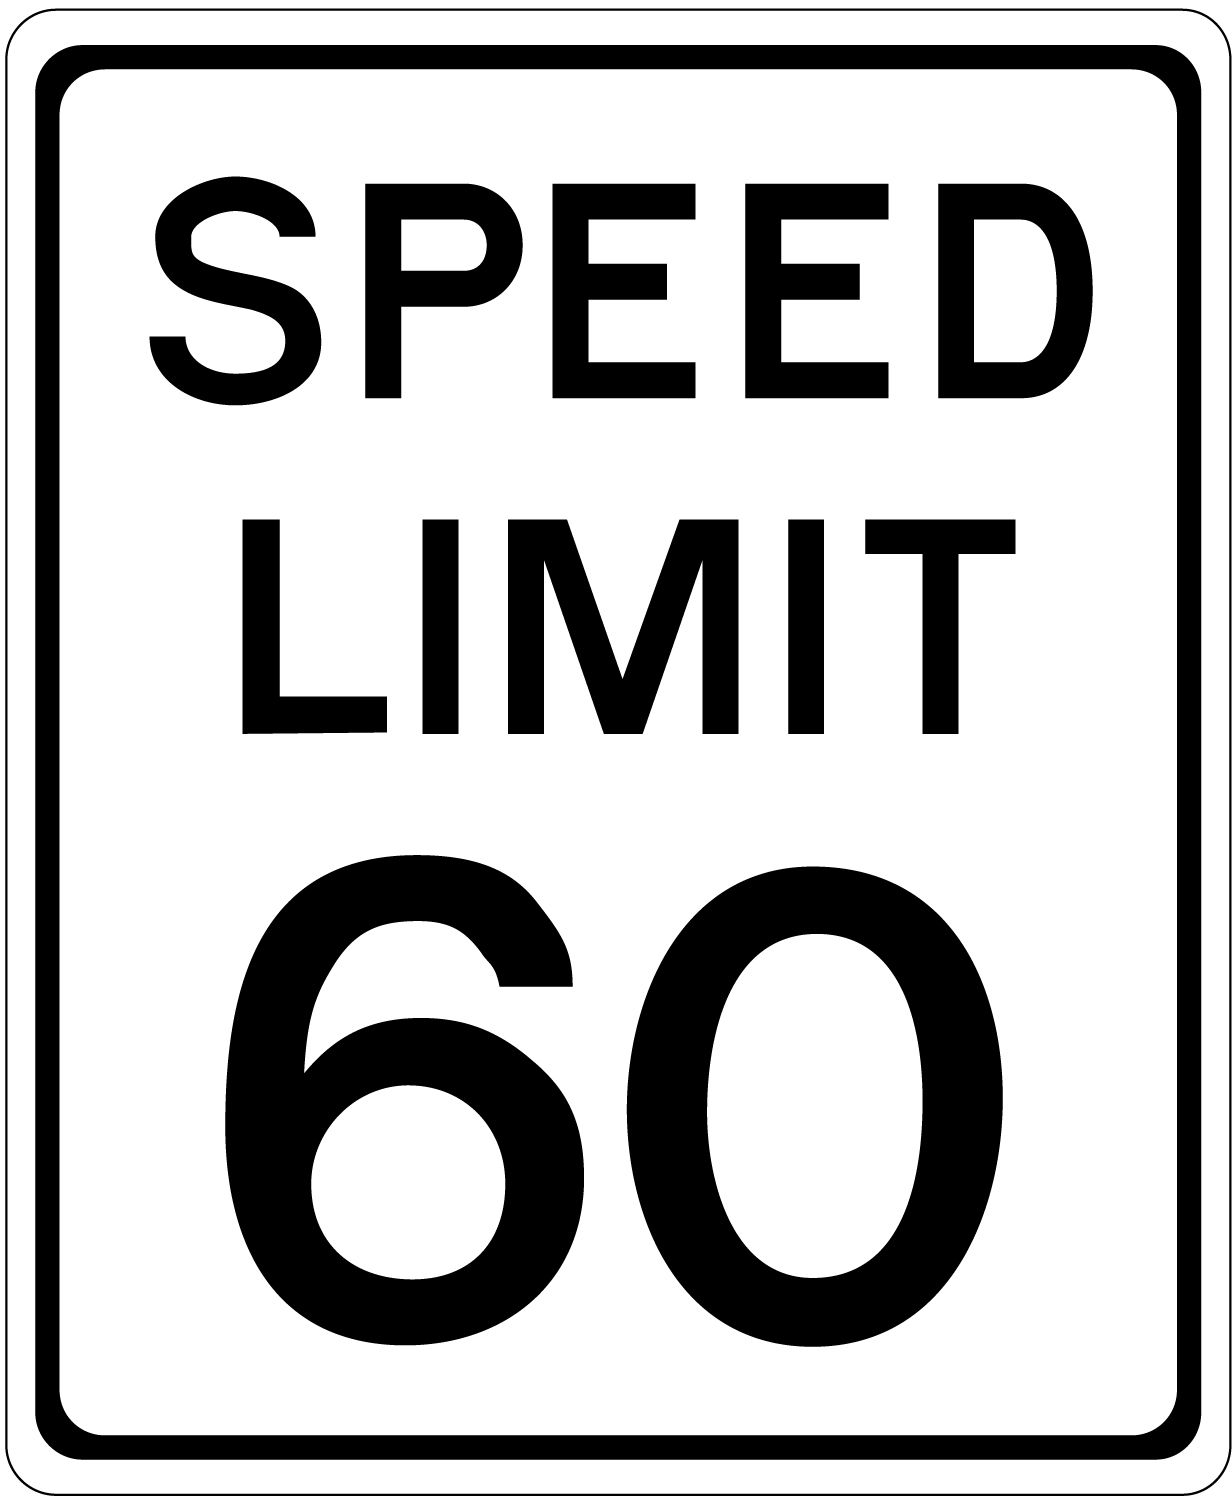 The maximum speed limit in Texas is 60mph on highways unless otherwise posted.